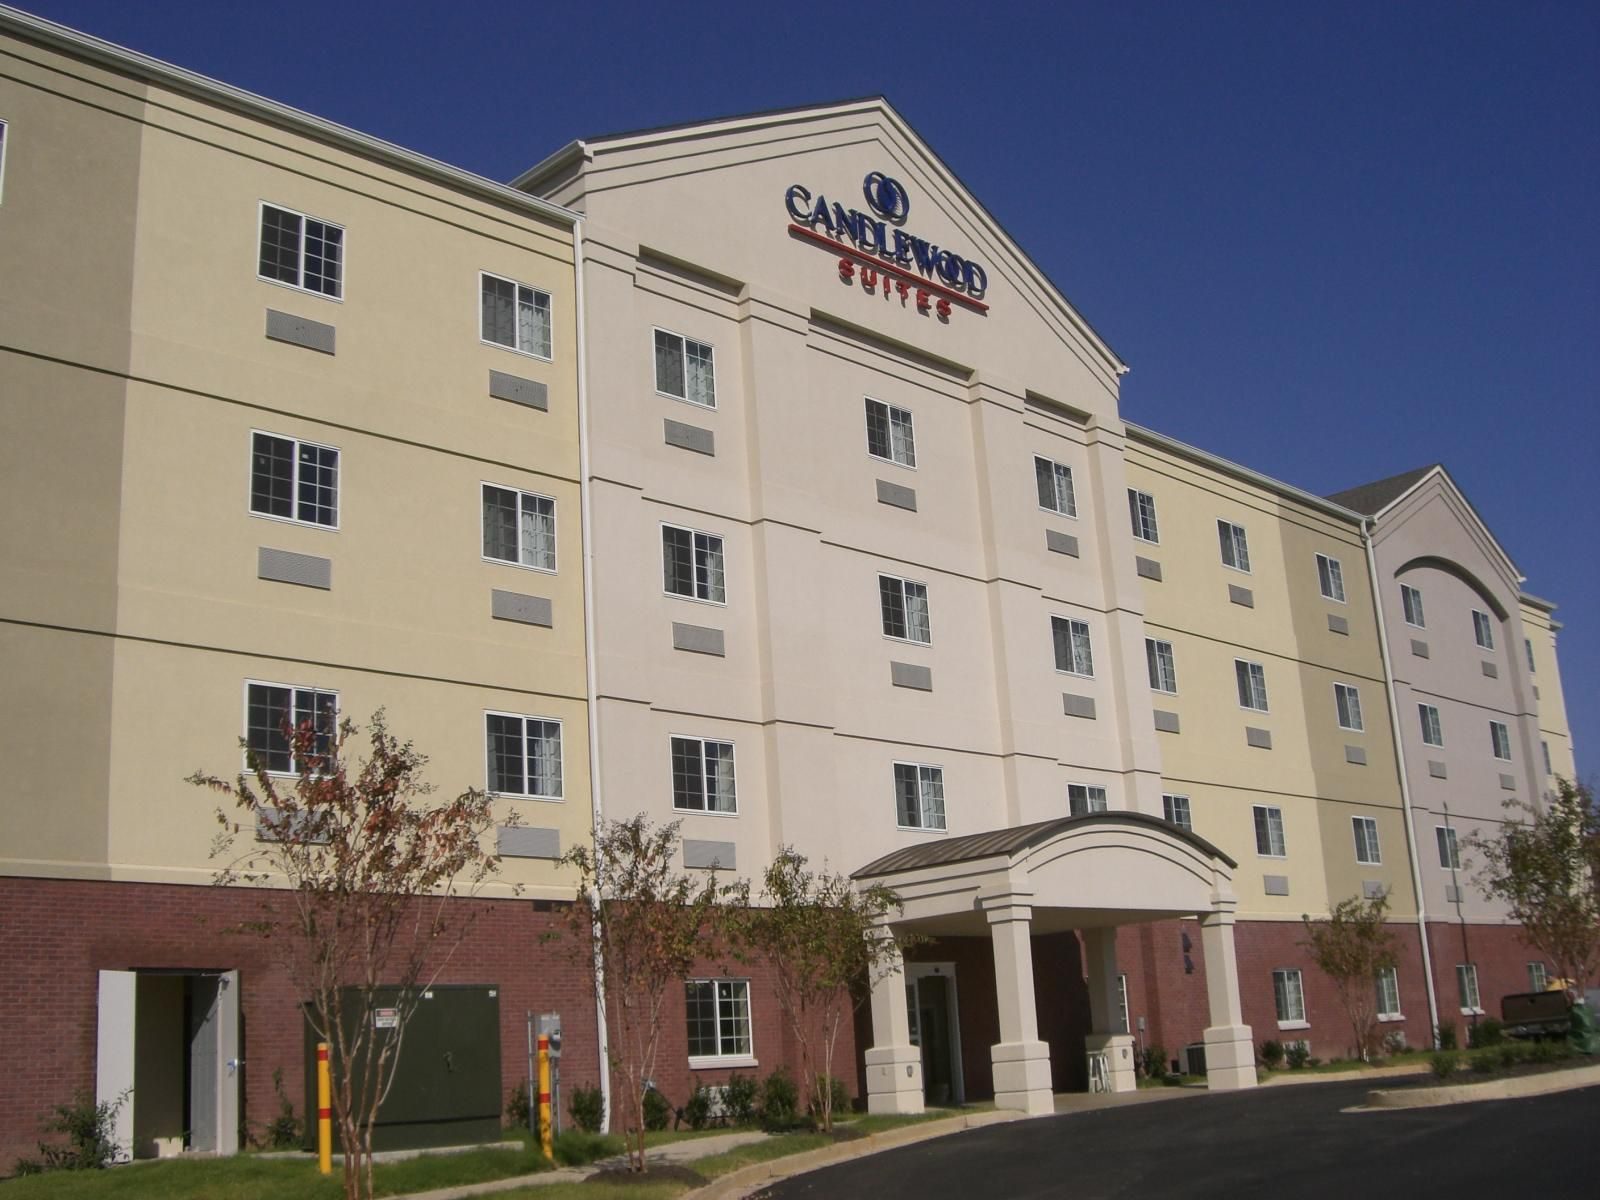 Memphis tn hotel rooms lodging in memphis - Memphis Hotels Candlewood Suites Memphis Extended Stay Hotel In Memphis Tennessee